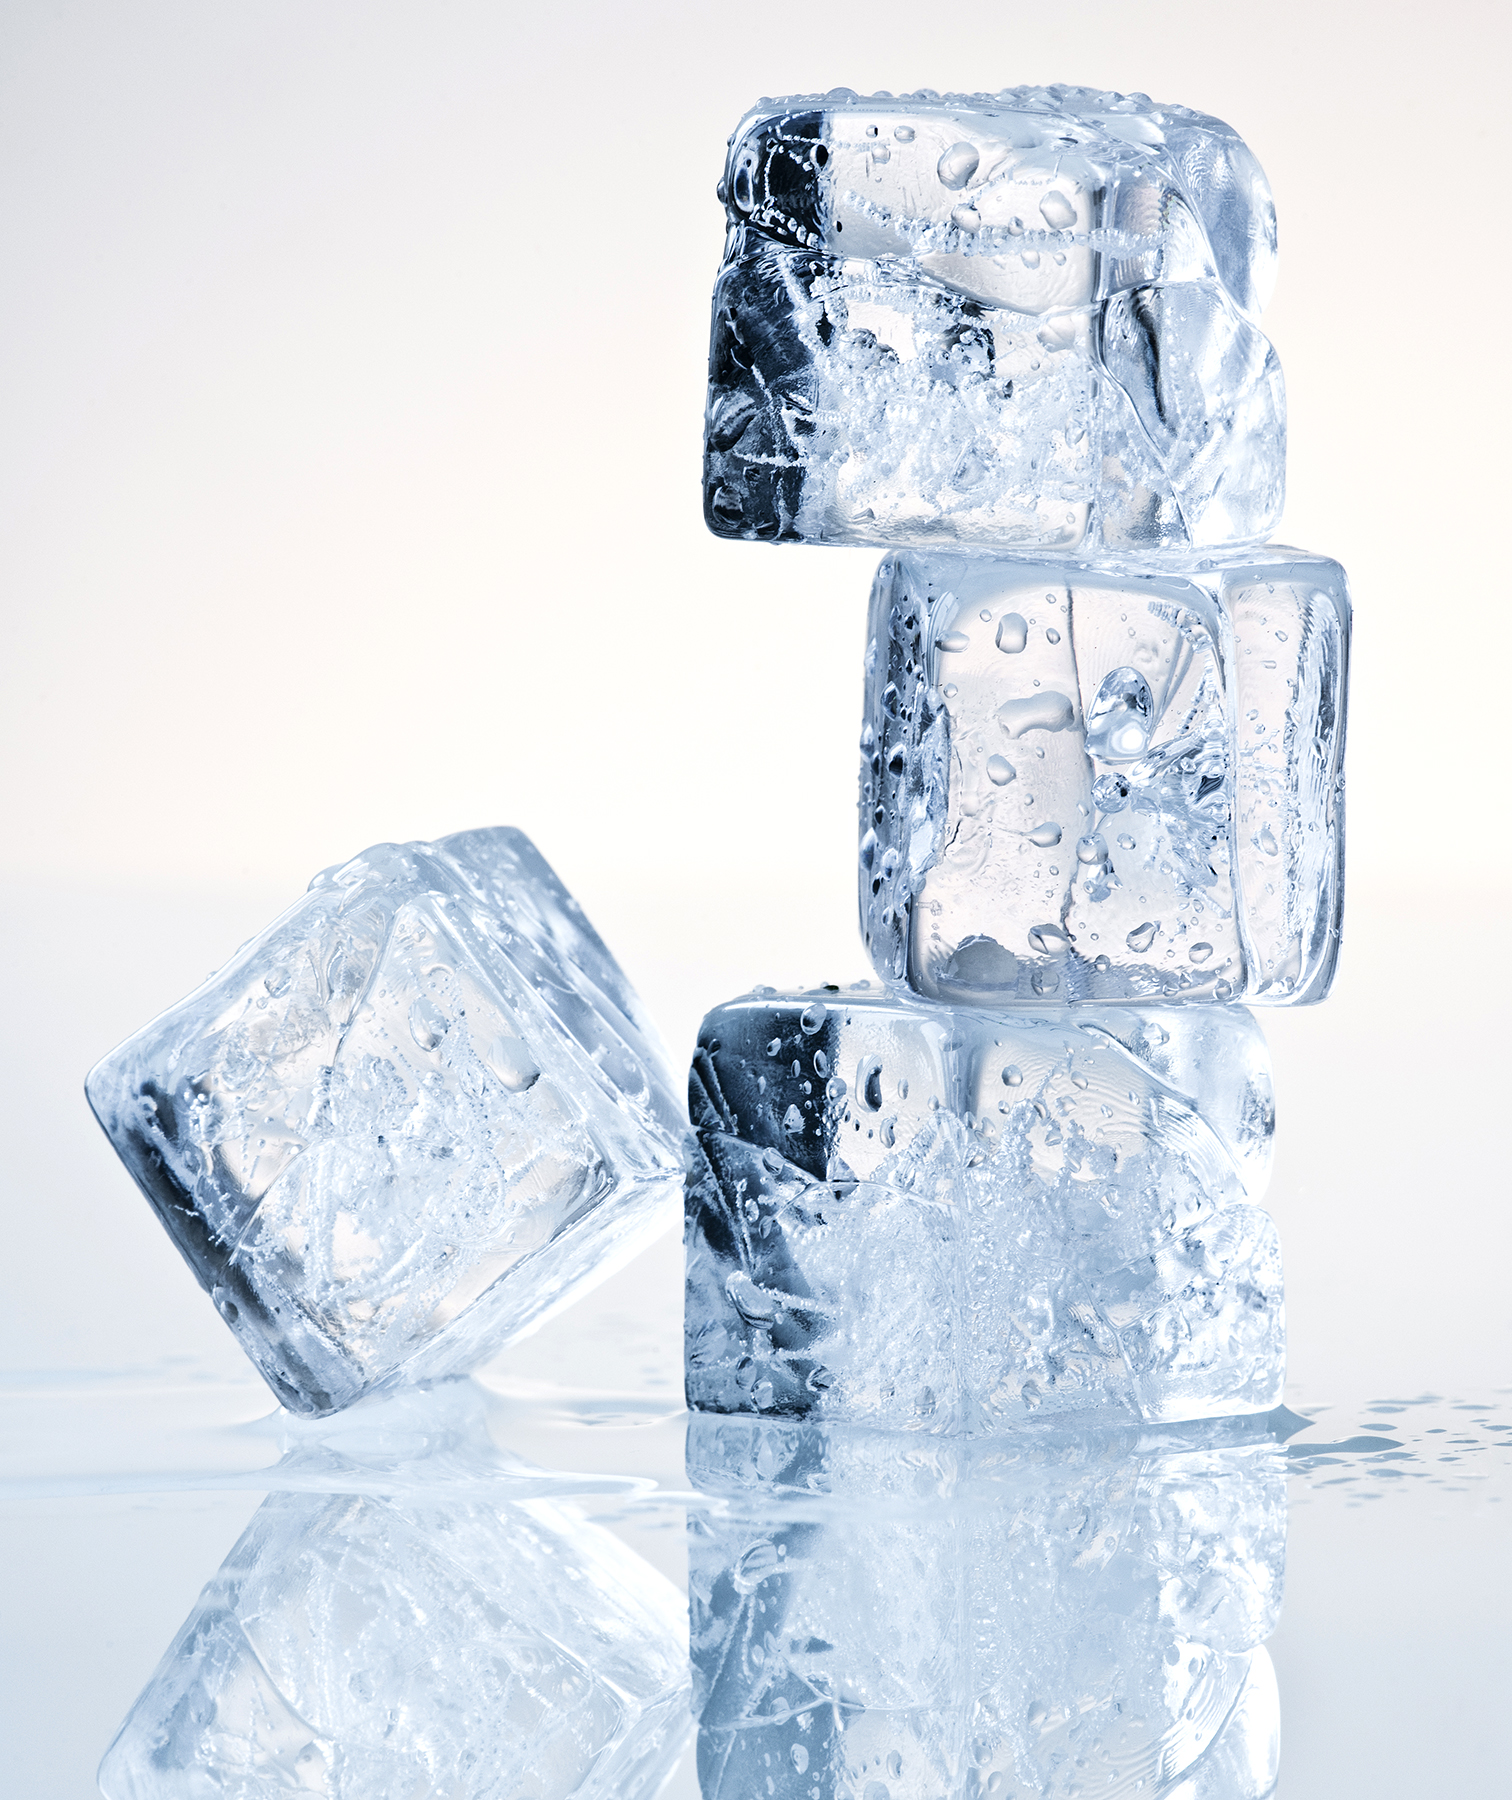 Stacked ice cubes